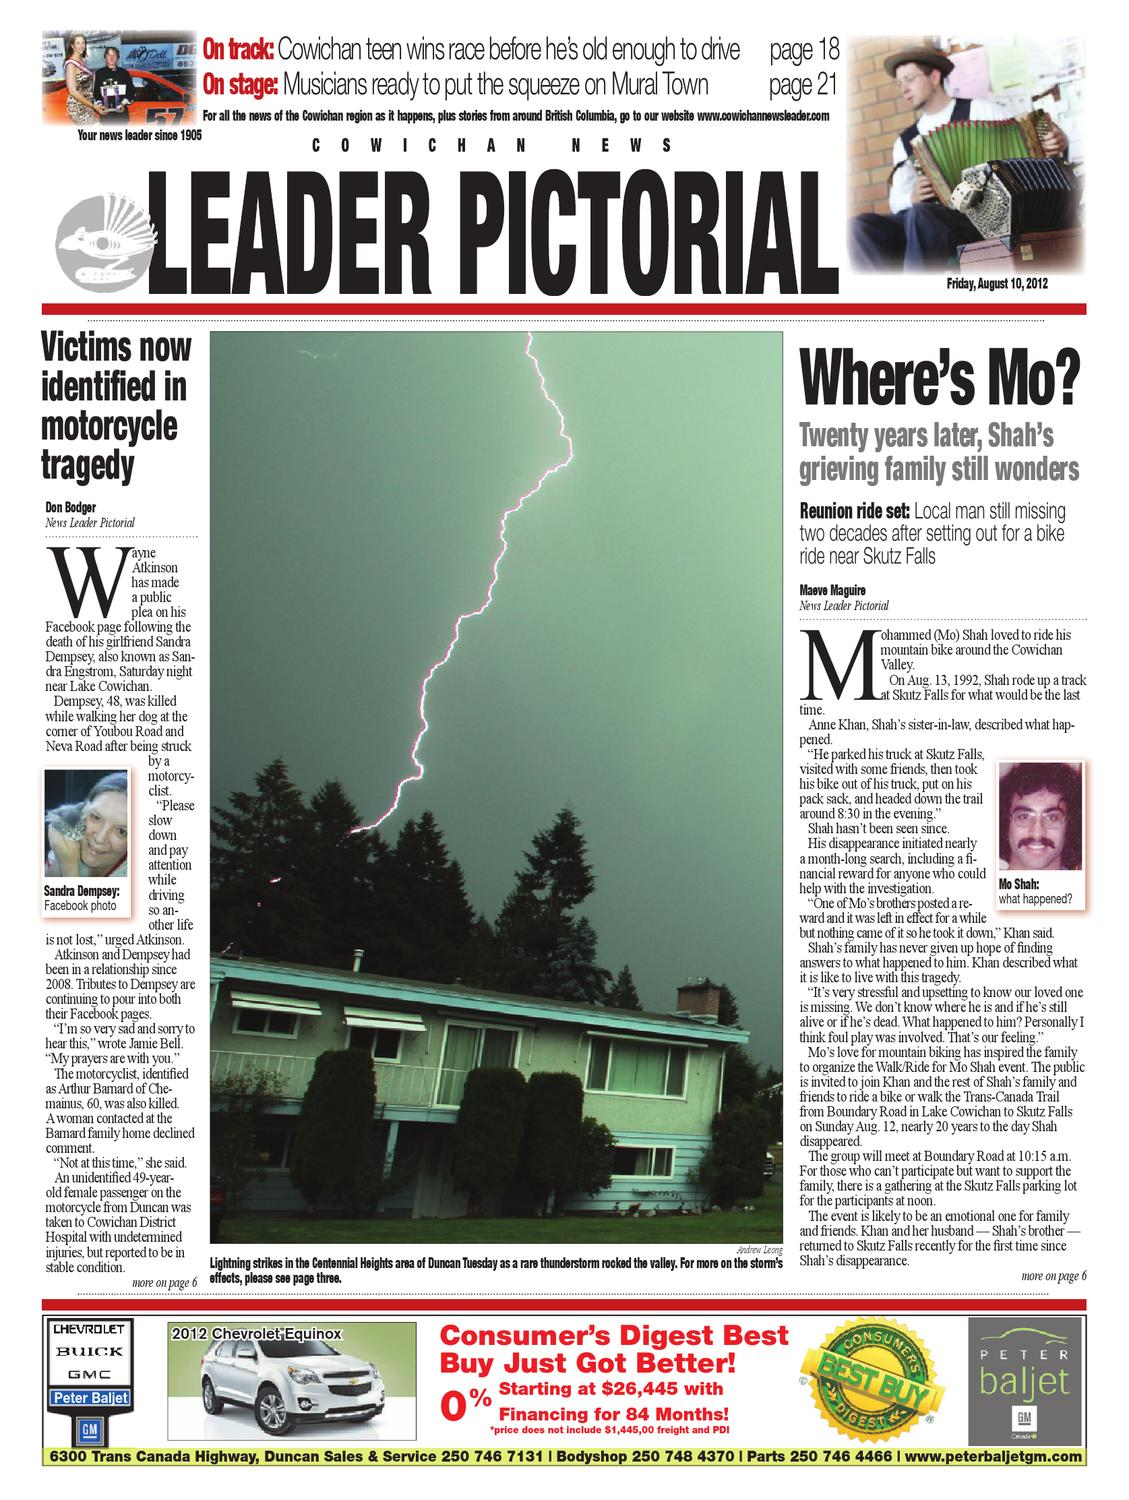 Cowichan News Leader Pictorial August 10 2012 By Black Press